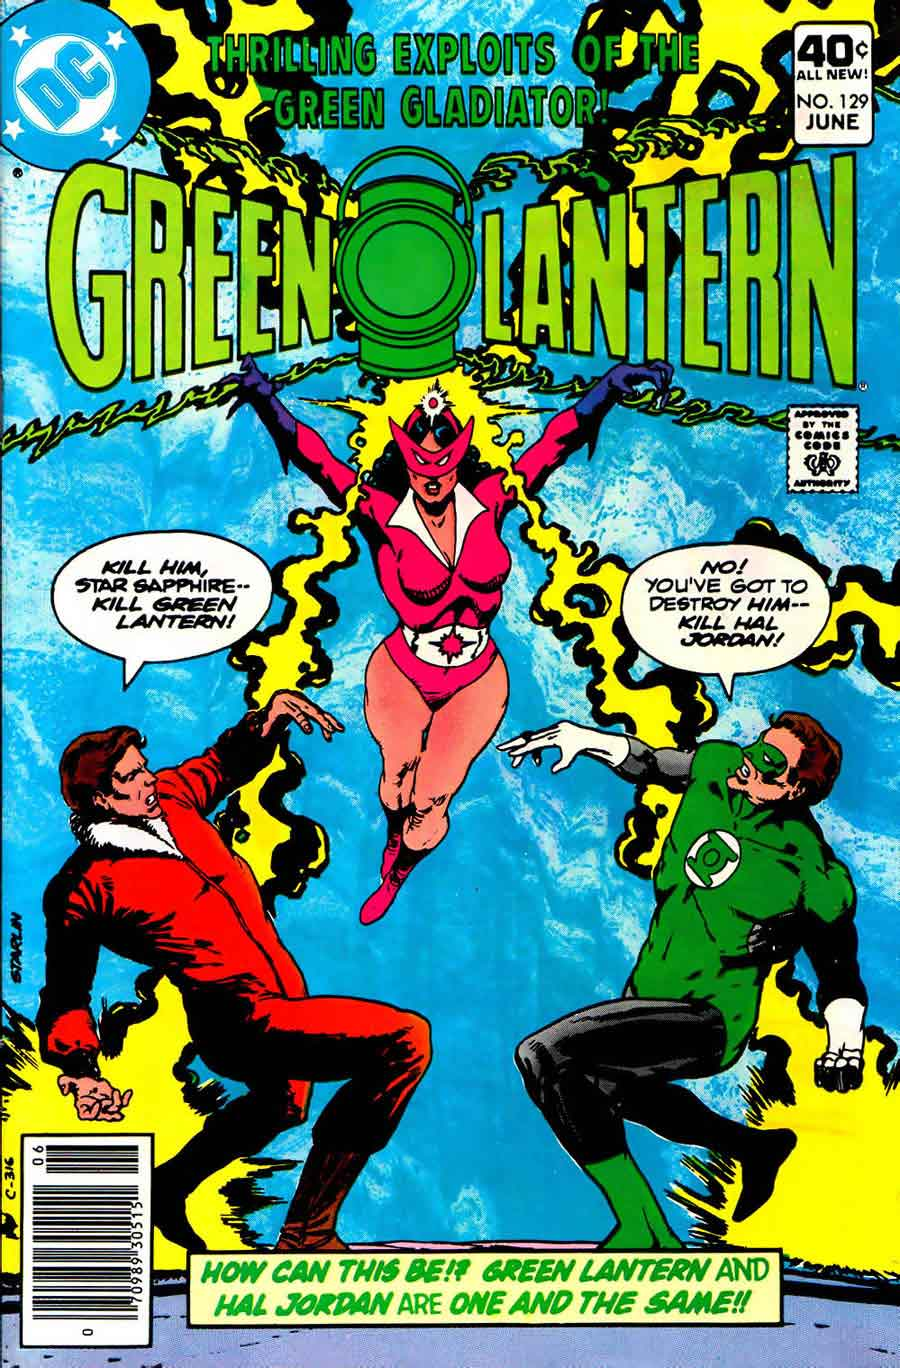 Green Lantern v2 #129 dc comic book cover art by Jim Starlin